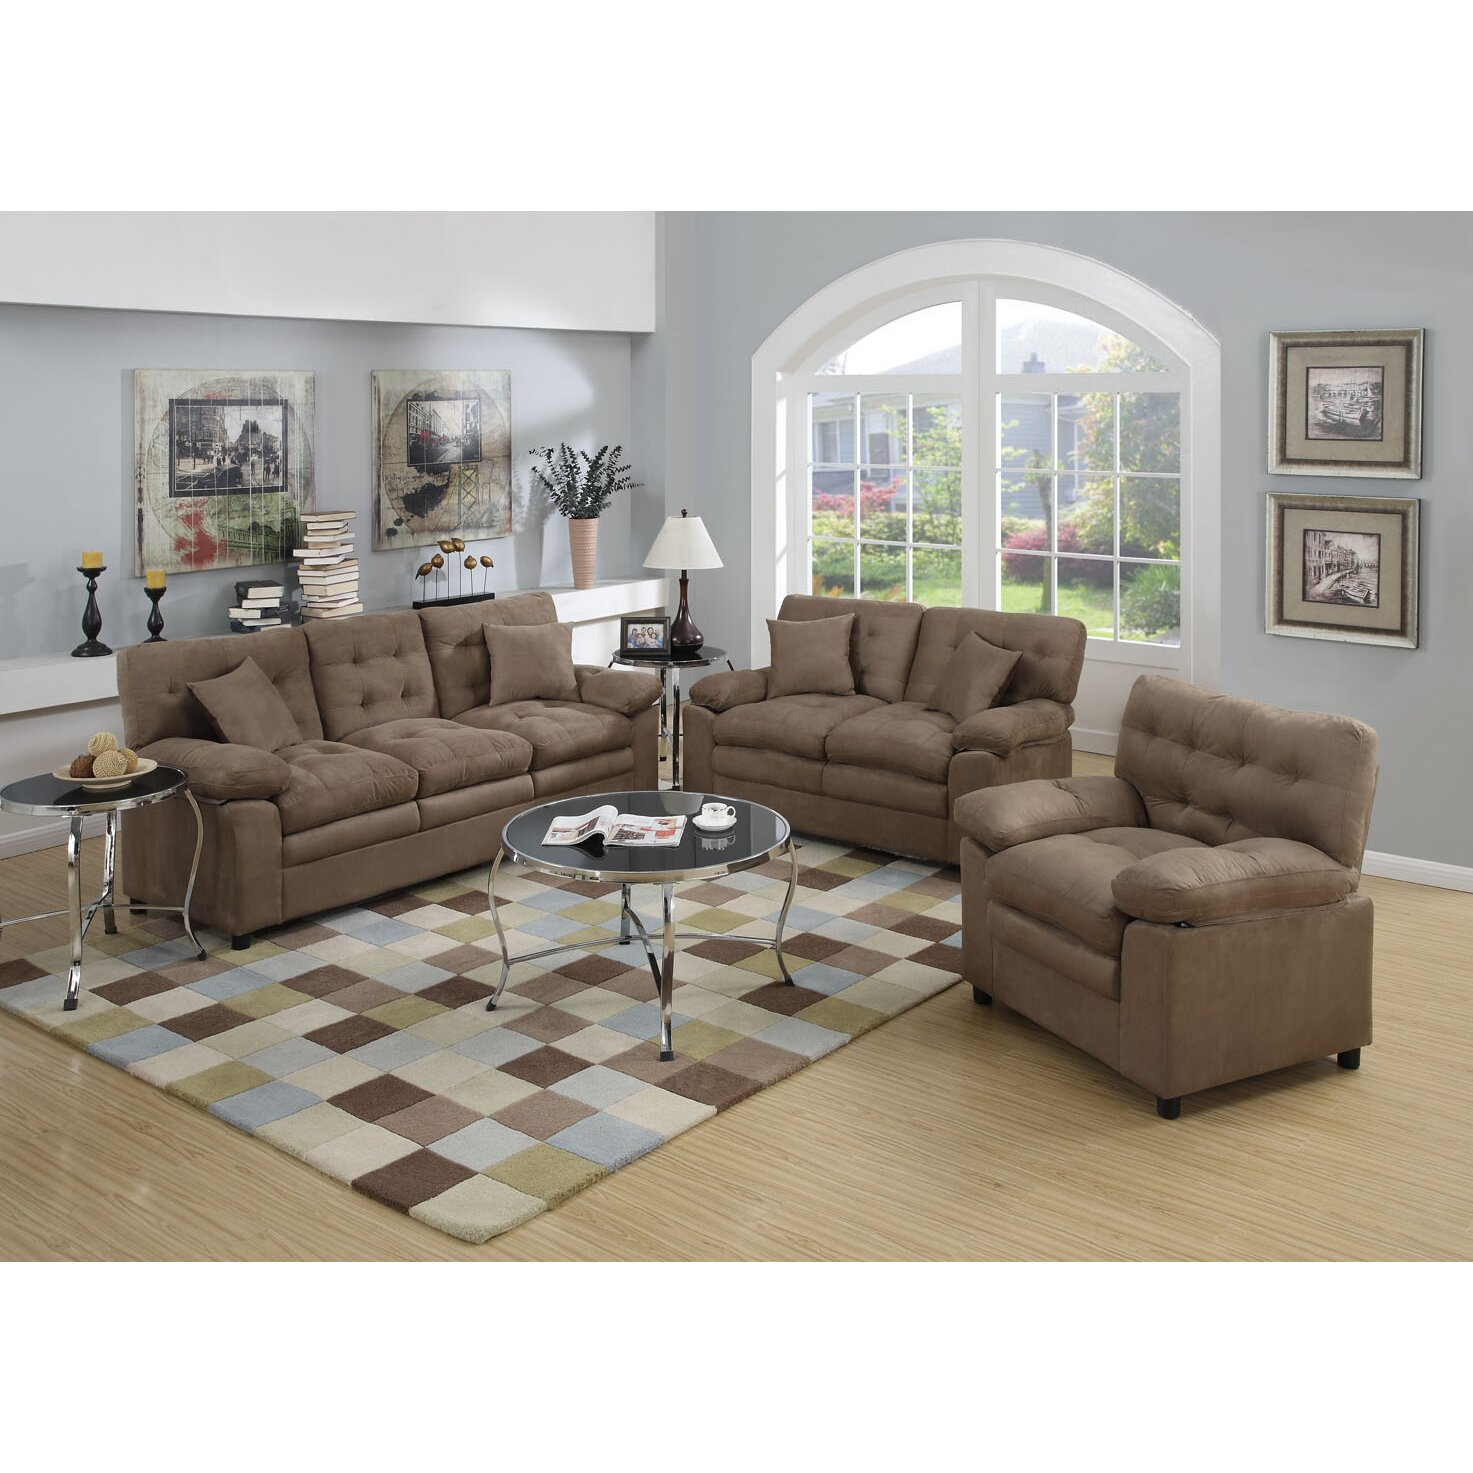 Poundex bobkona colona 3 piece living room set reviews for Family room furniture